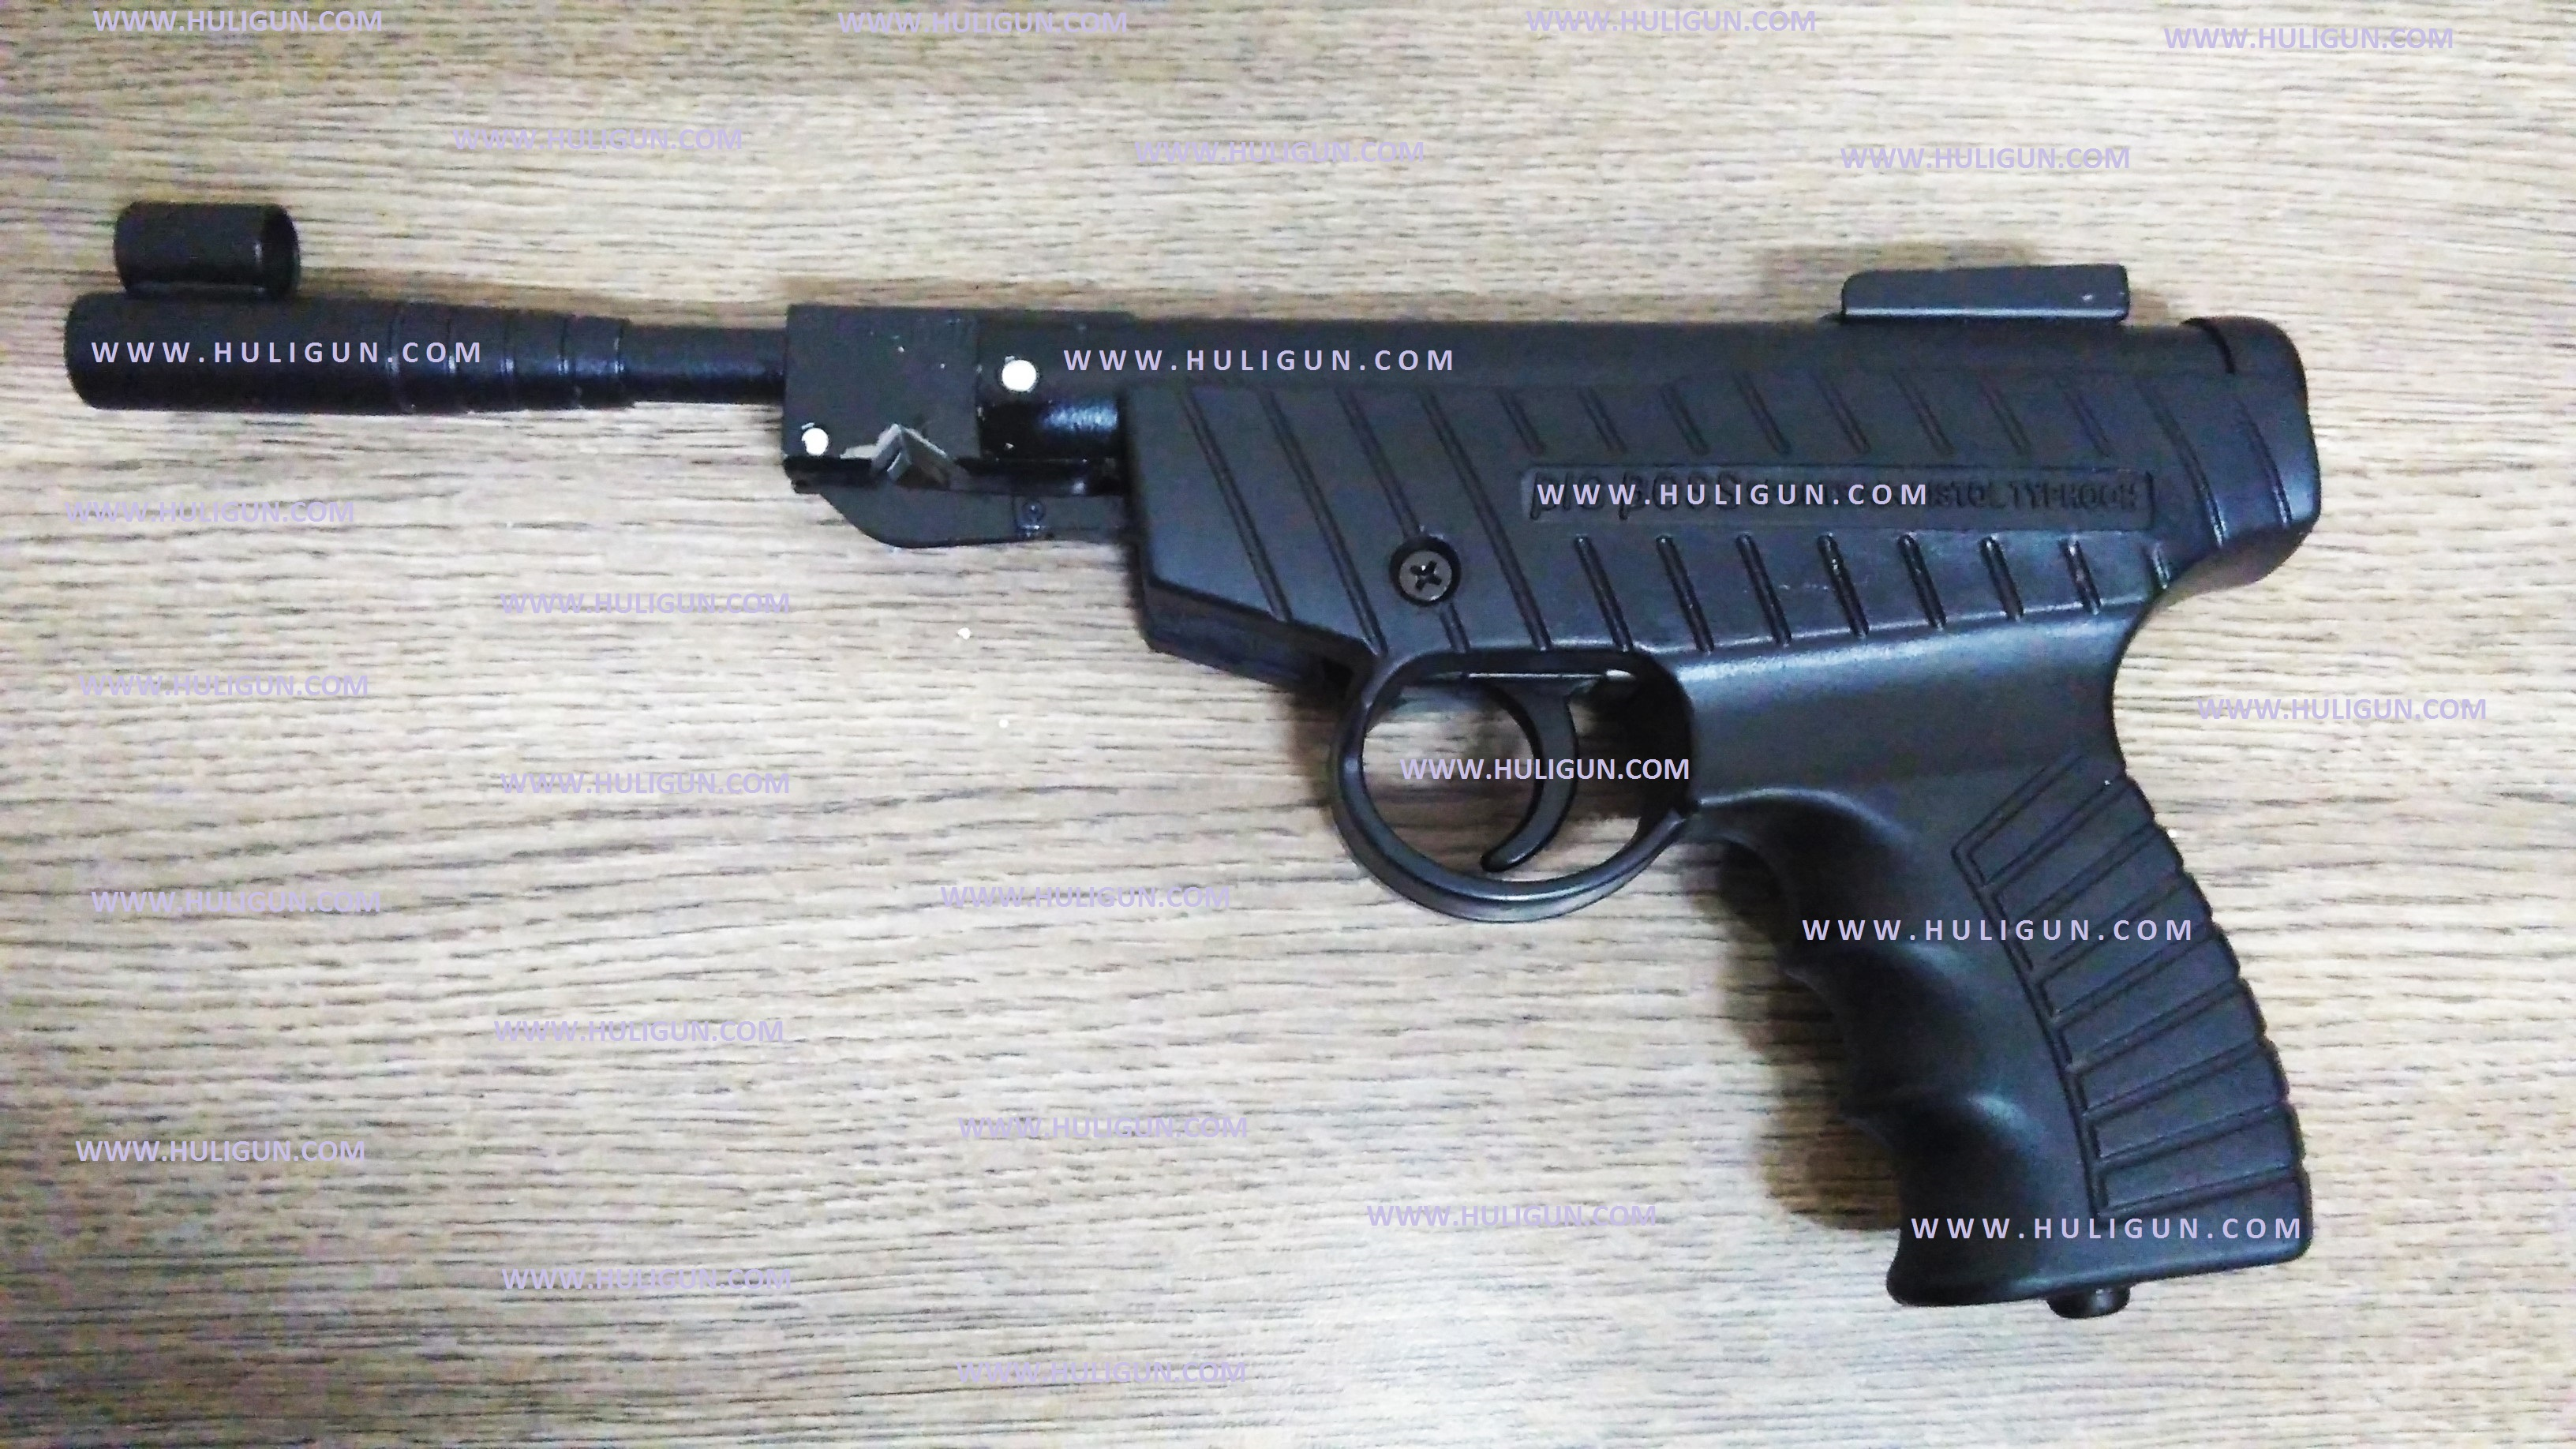 Typhoon Air Pistol Premium Improved Special Edition Model Buy Online India